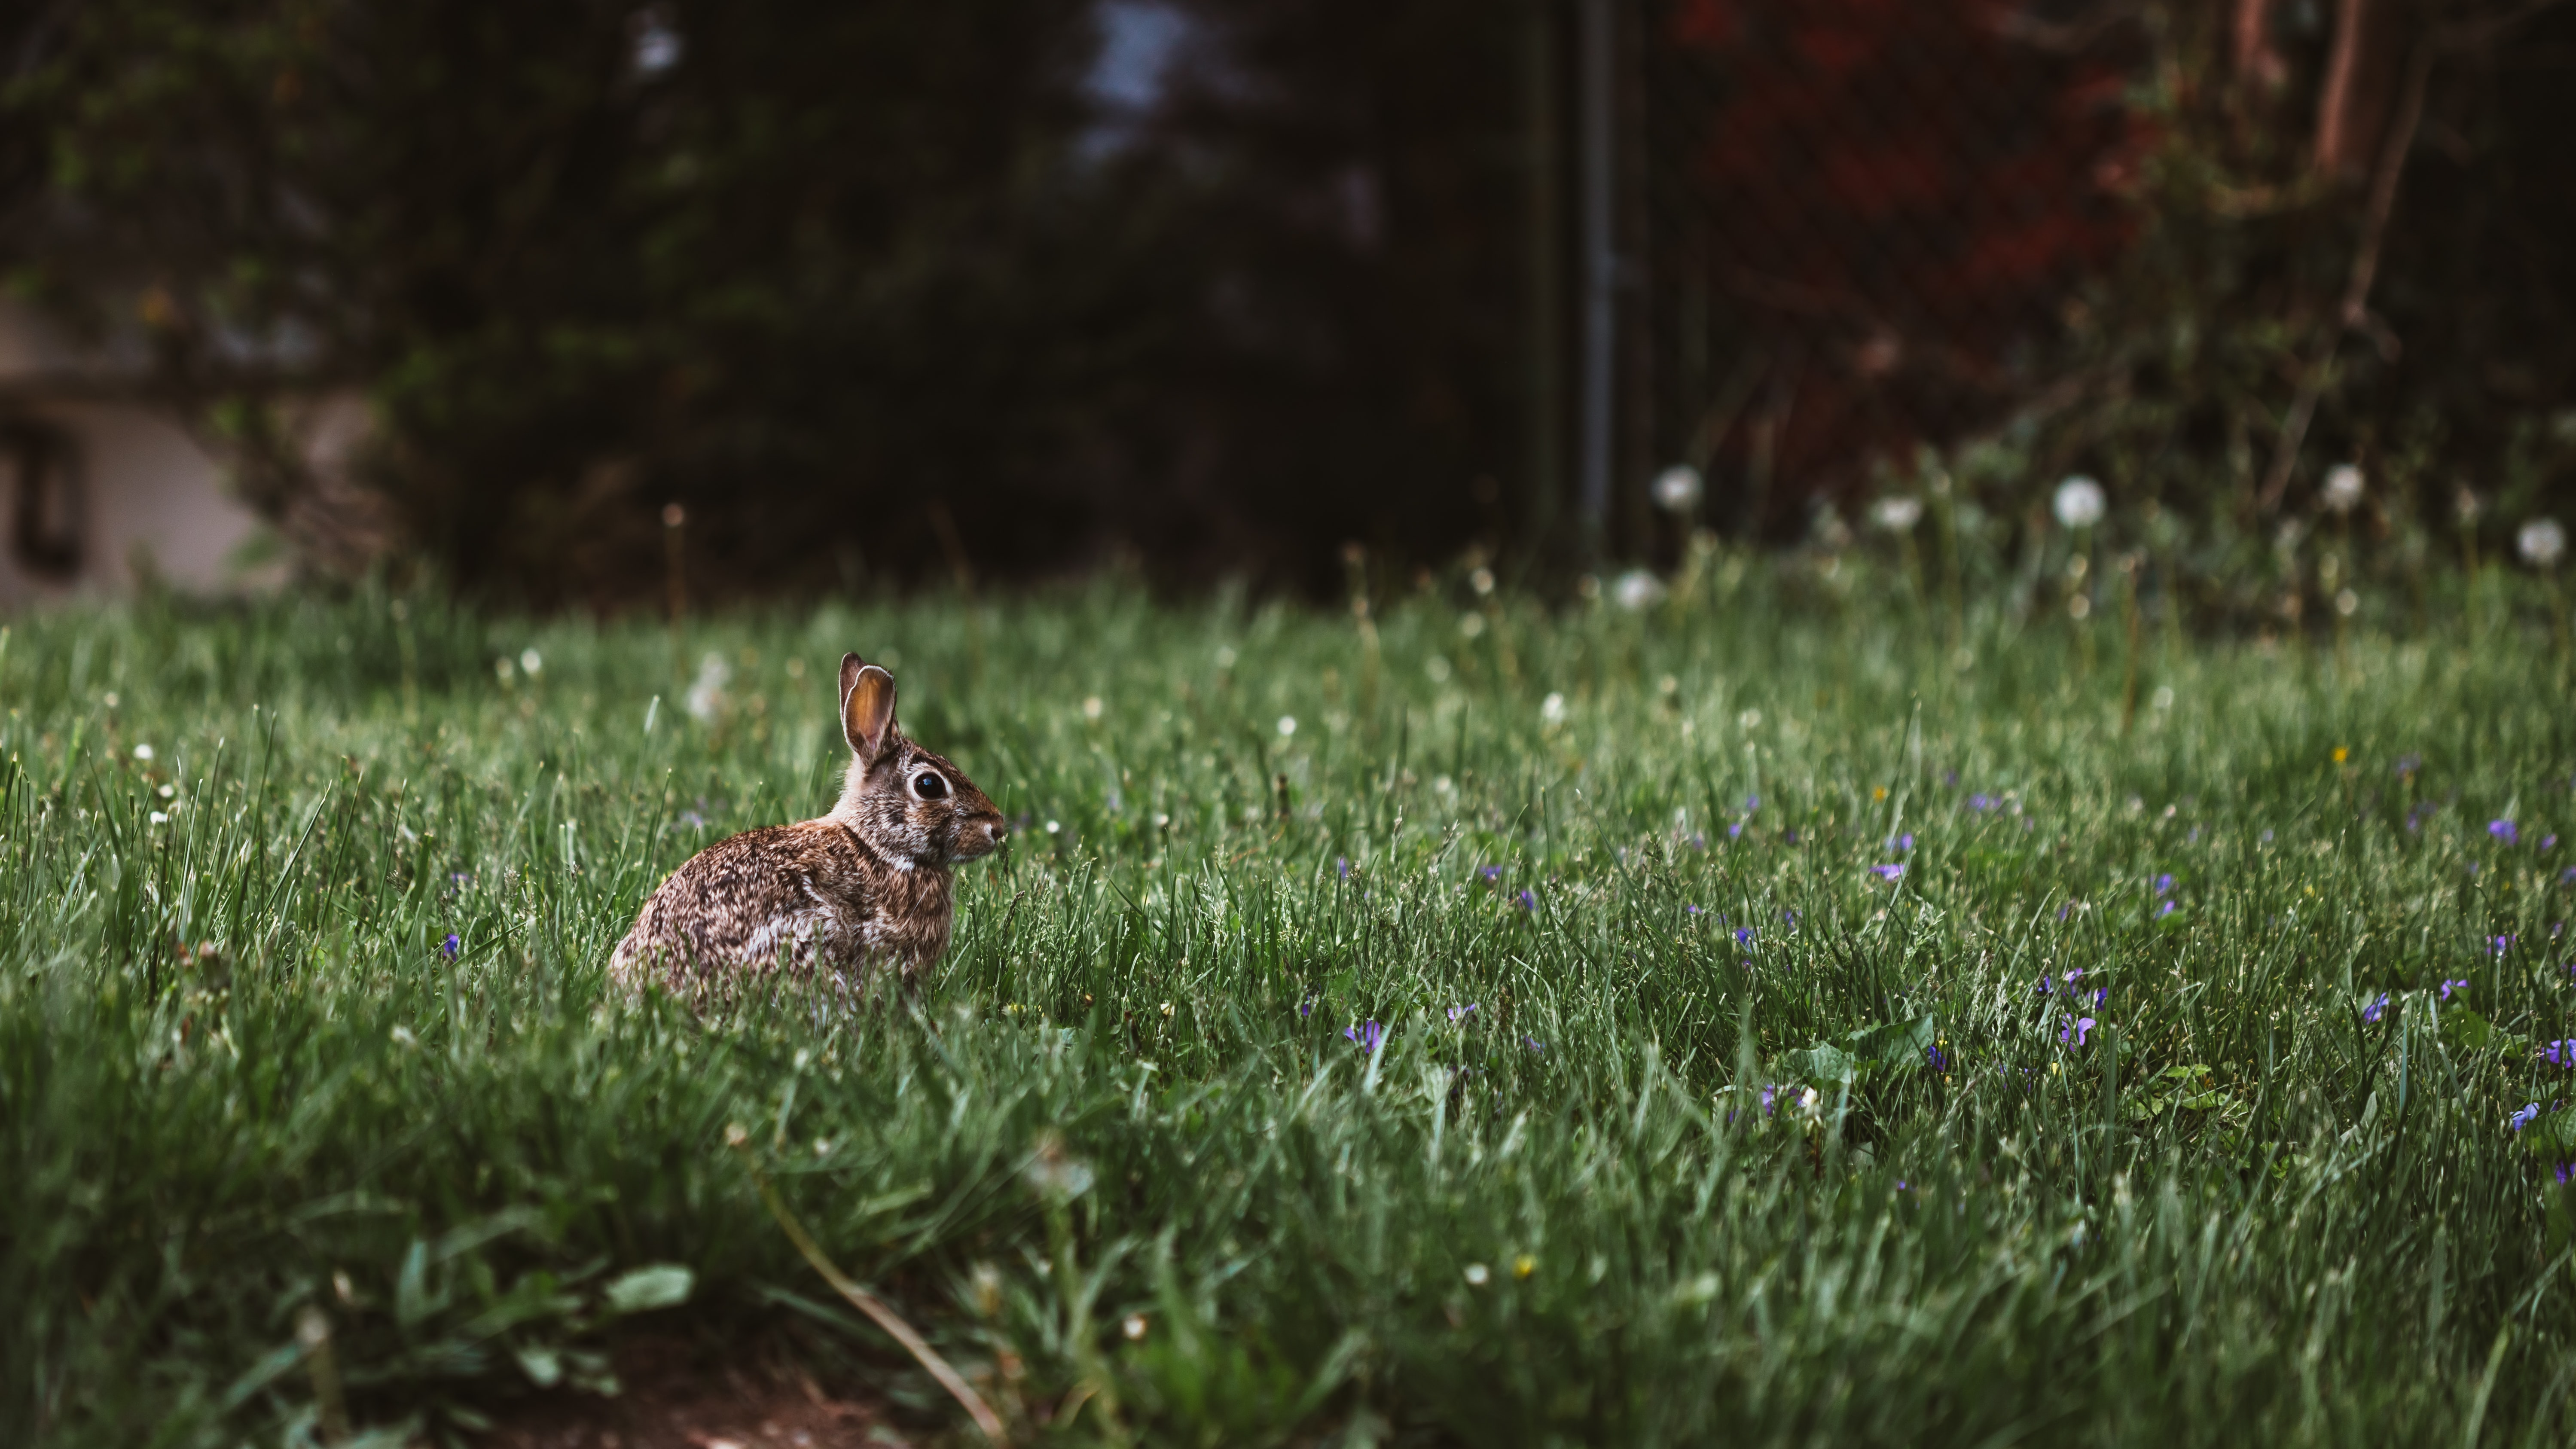 Brown rabbit with on a grassy ground